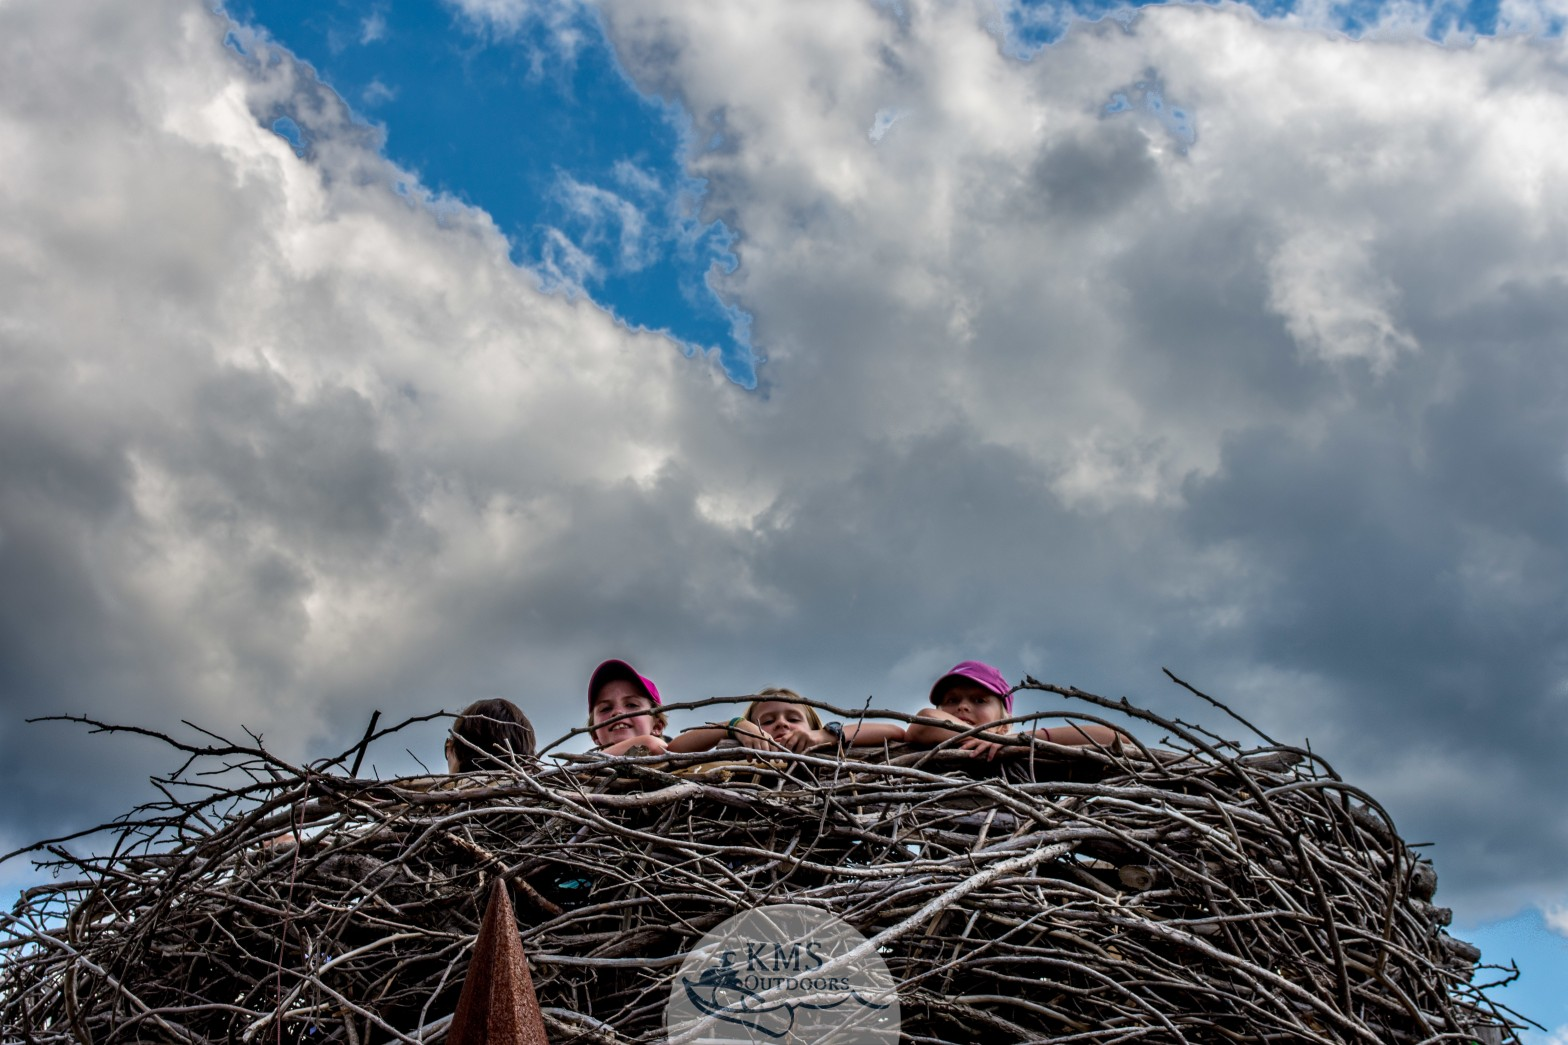 Eagle's nest at the Wild Center